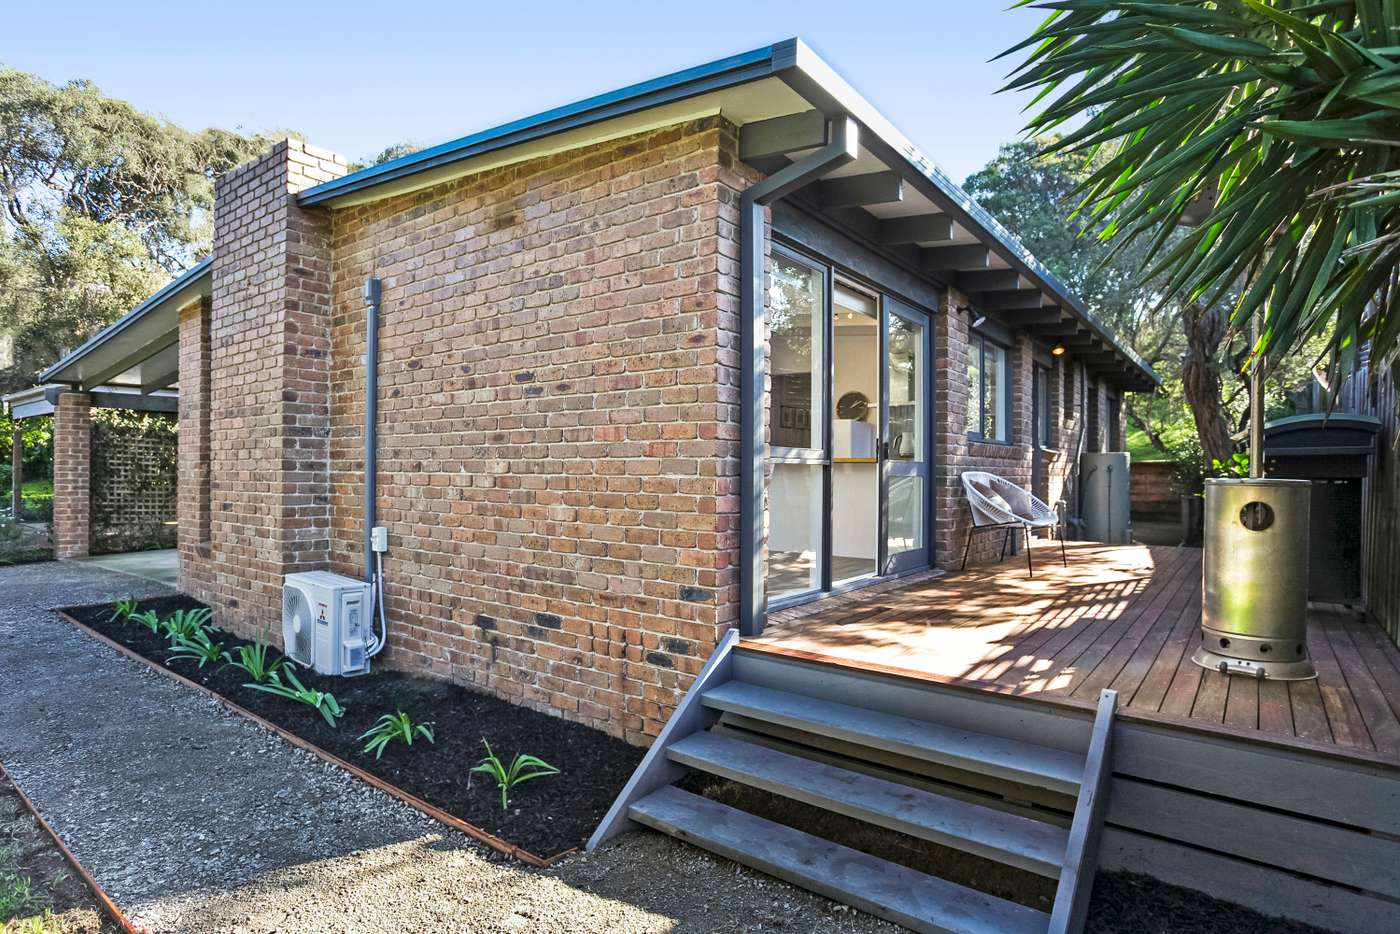 Main view of Homely house listing, 24 Iolanda Street, Rye VIC 3941